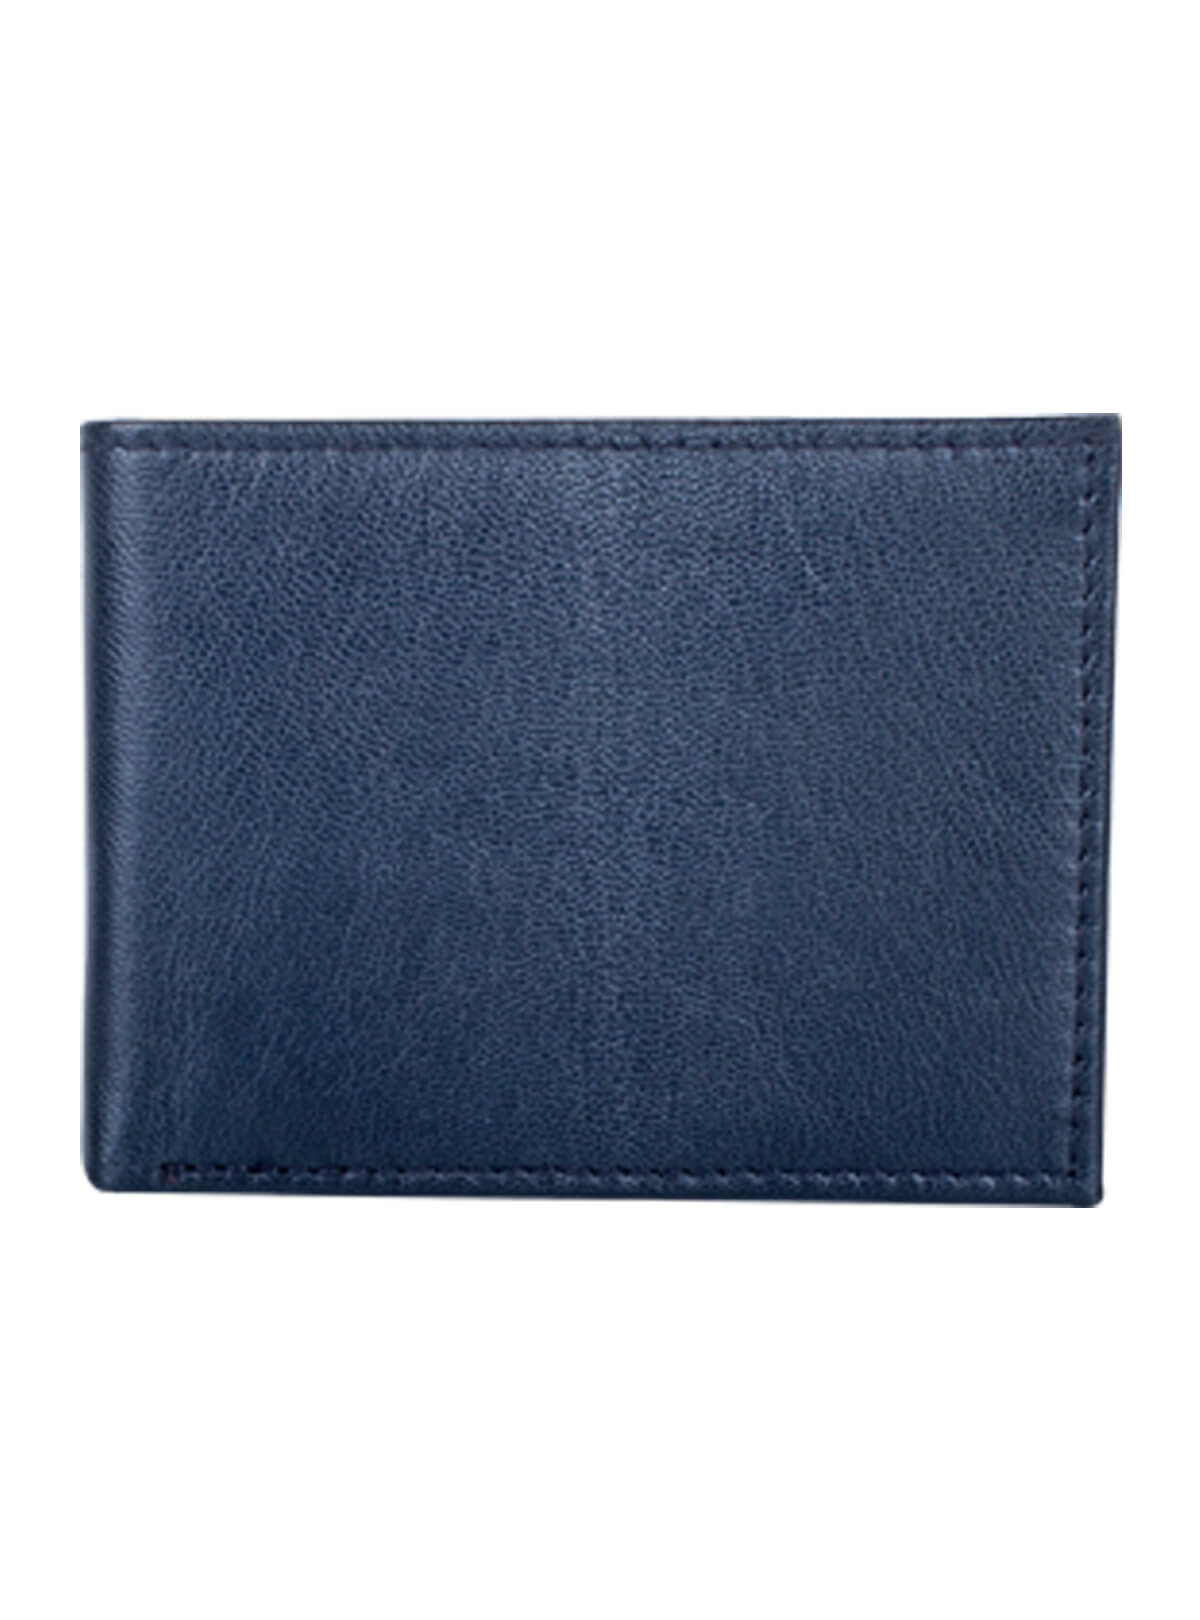 East Bay Blue Leather Wallet Plain